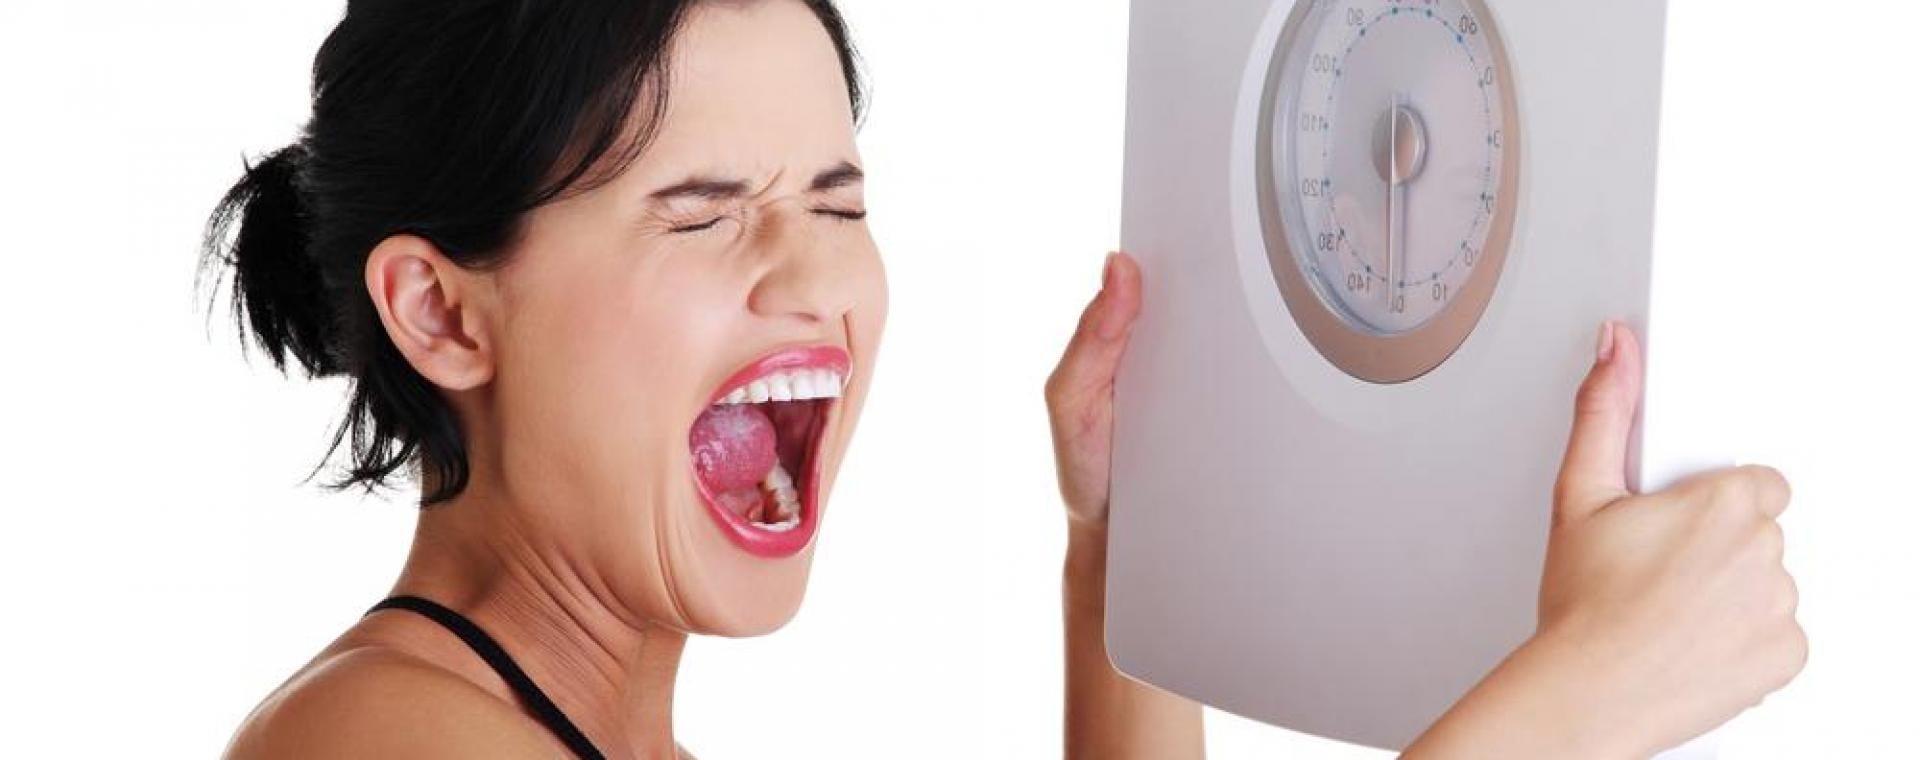 Healthy care garcinia cambogia side effects